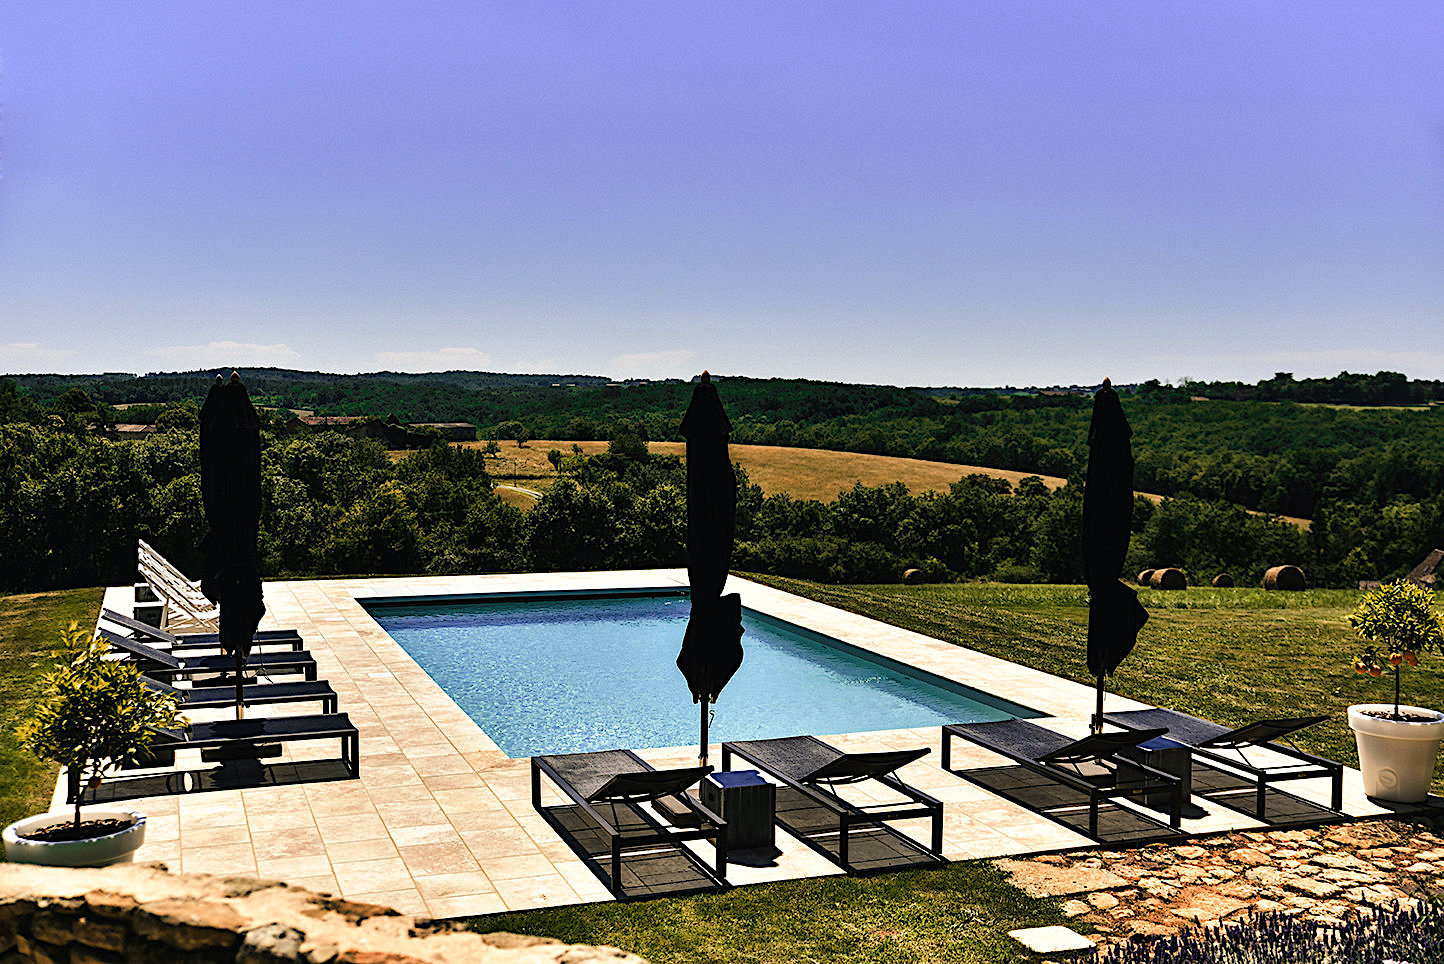 Blue saltwater pool in the garden of a luxury holiday home in the Dordogne, France, with black sun loungers and parasols and a view over the countryside